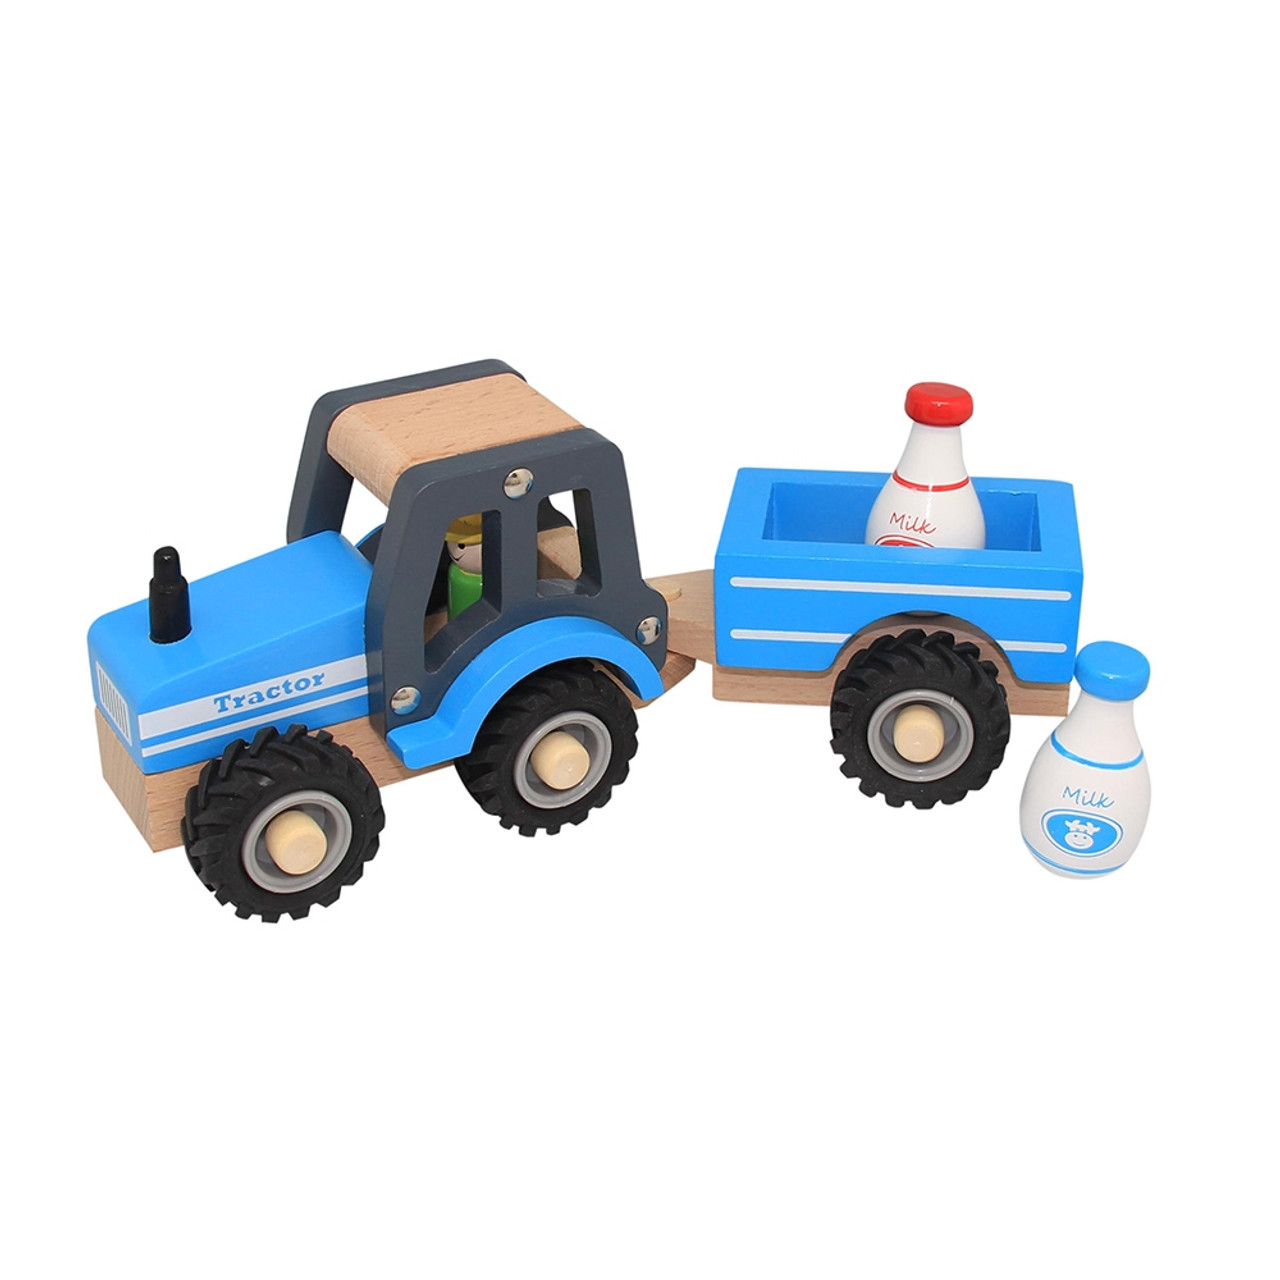 Wooden Toy Blue Tractor and Trailer